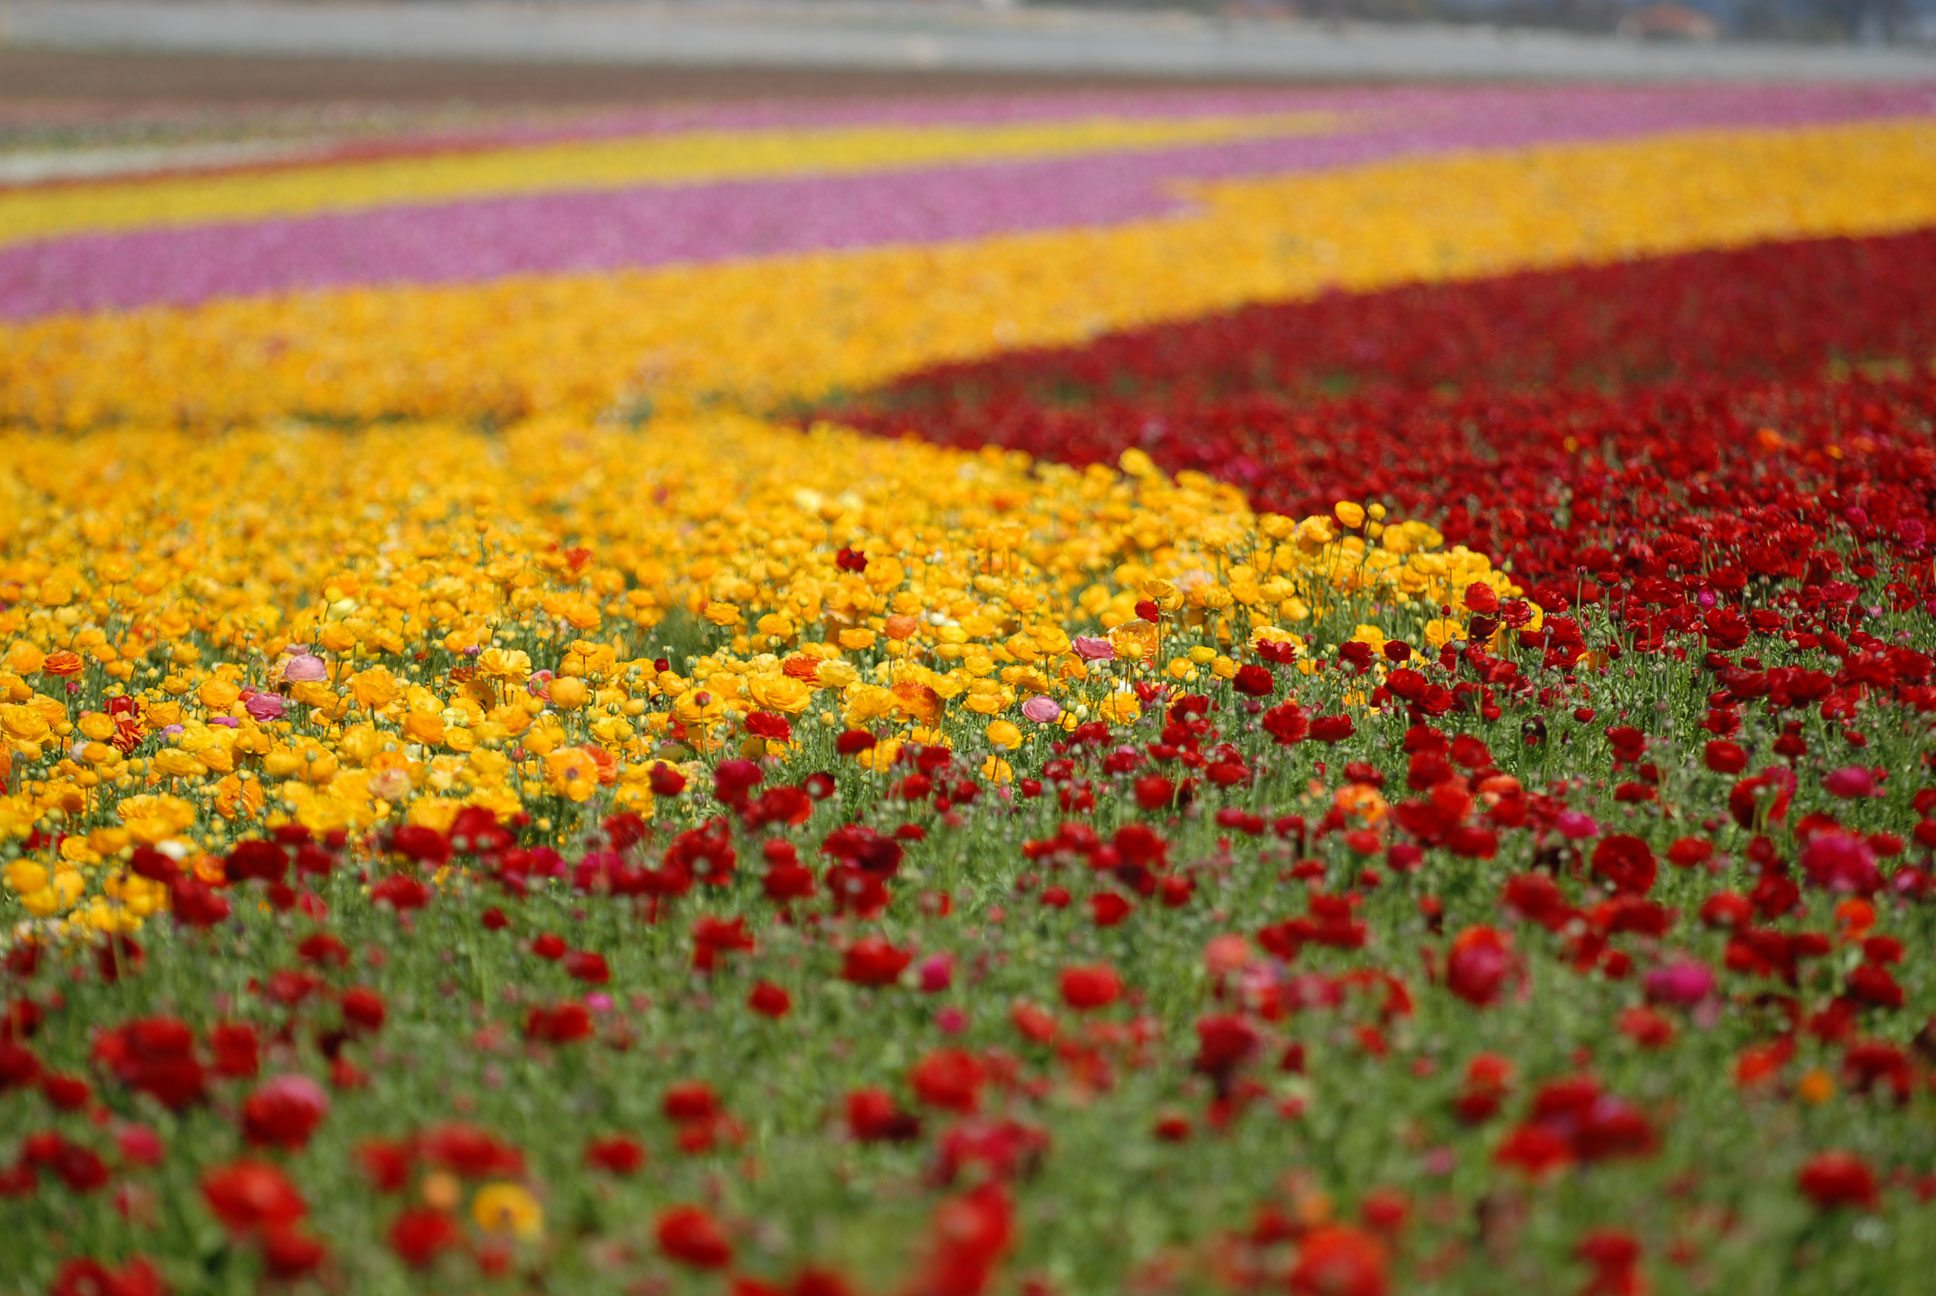 Rows of Red, Pink and Yellow Flowers